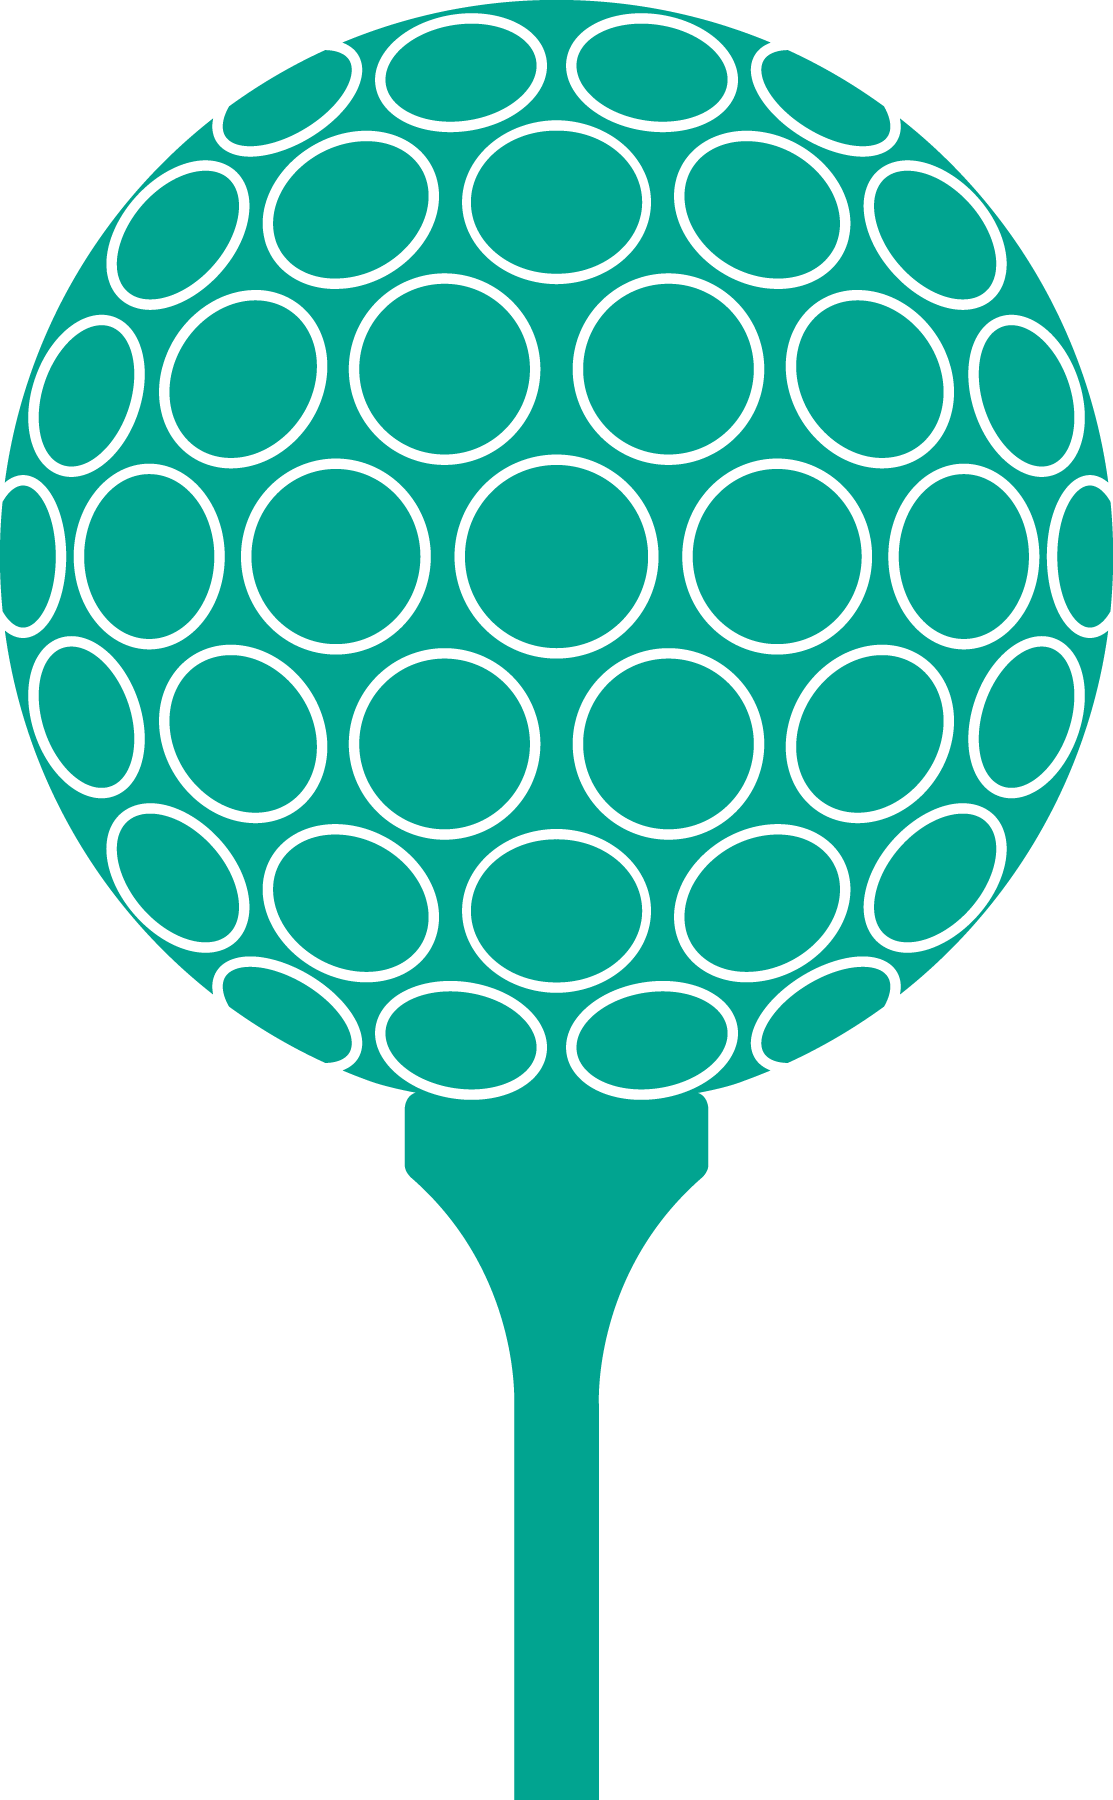 Golf ball and tee png